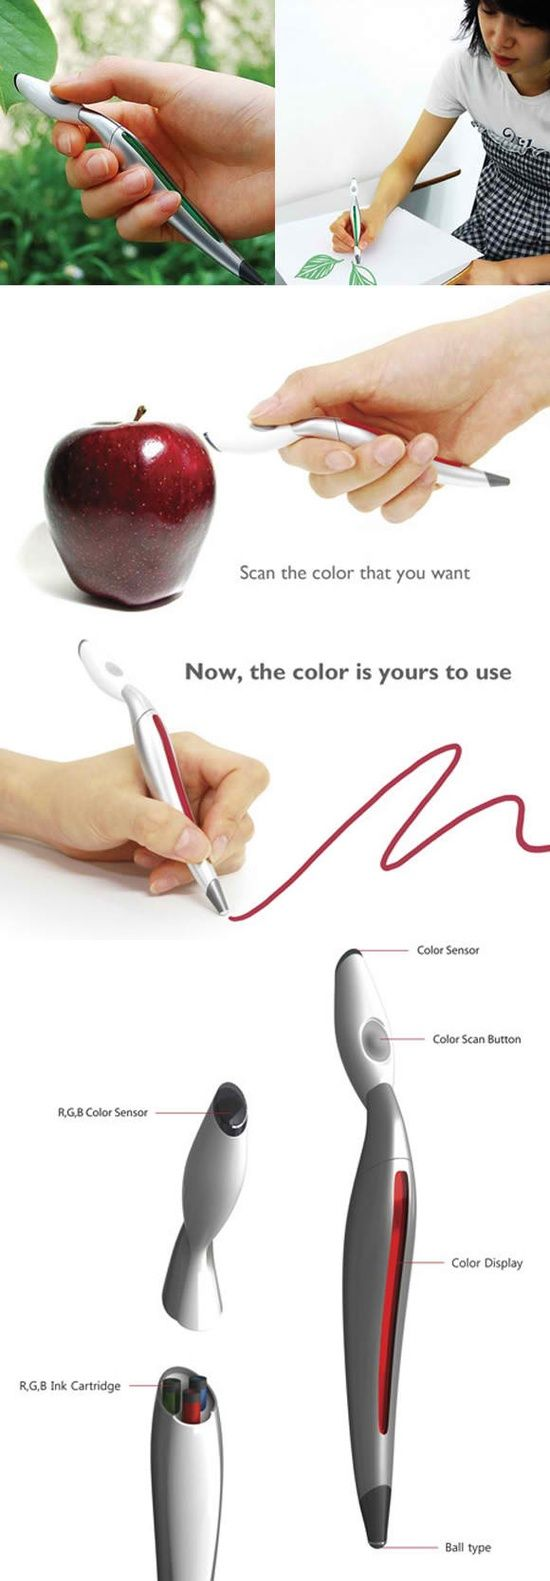 Apple iPen color capture pen